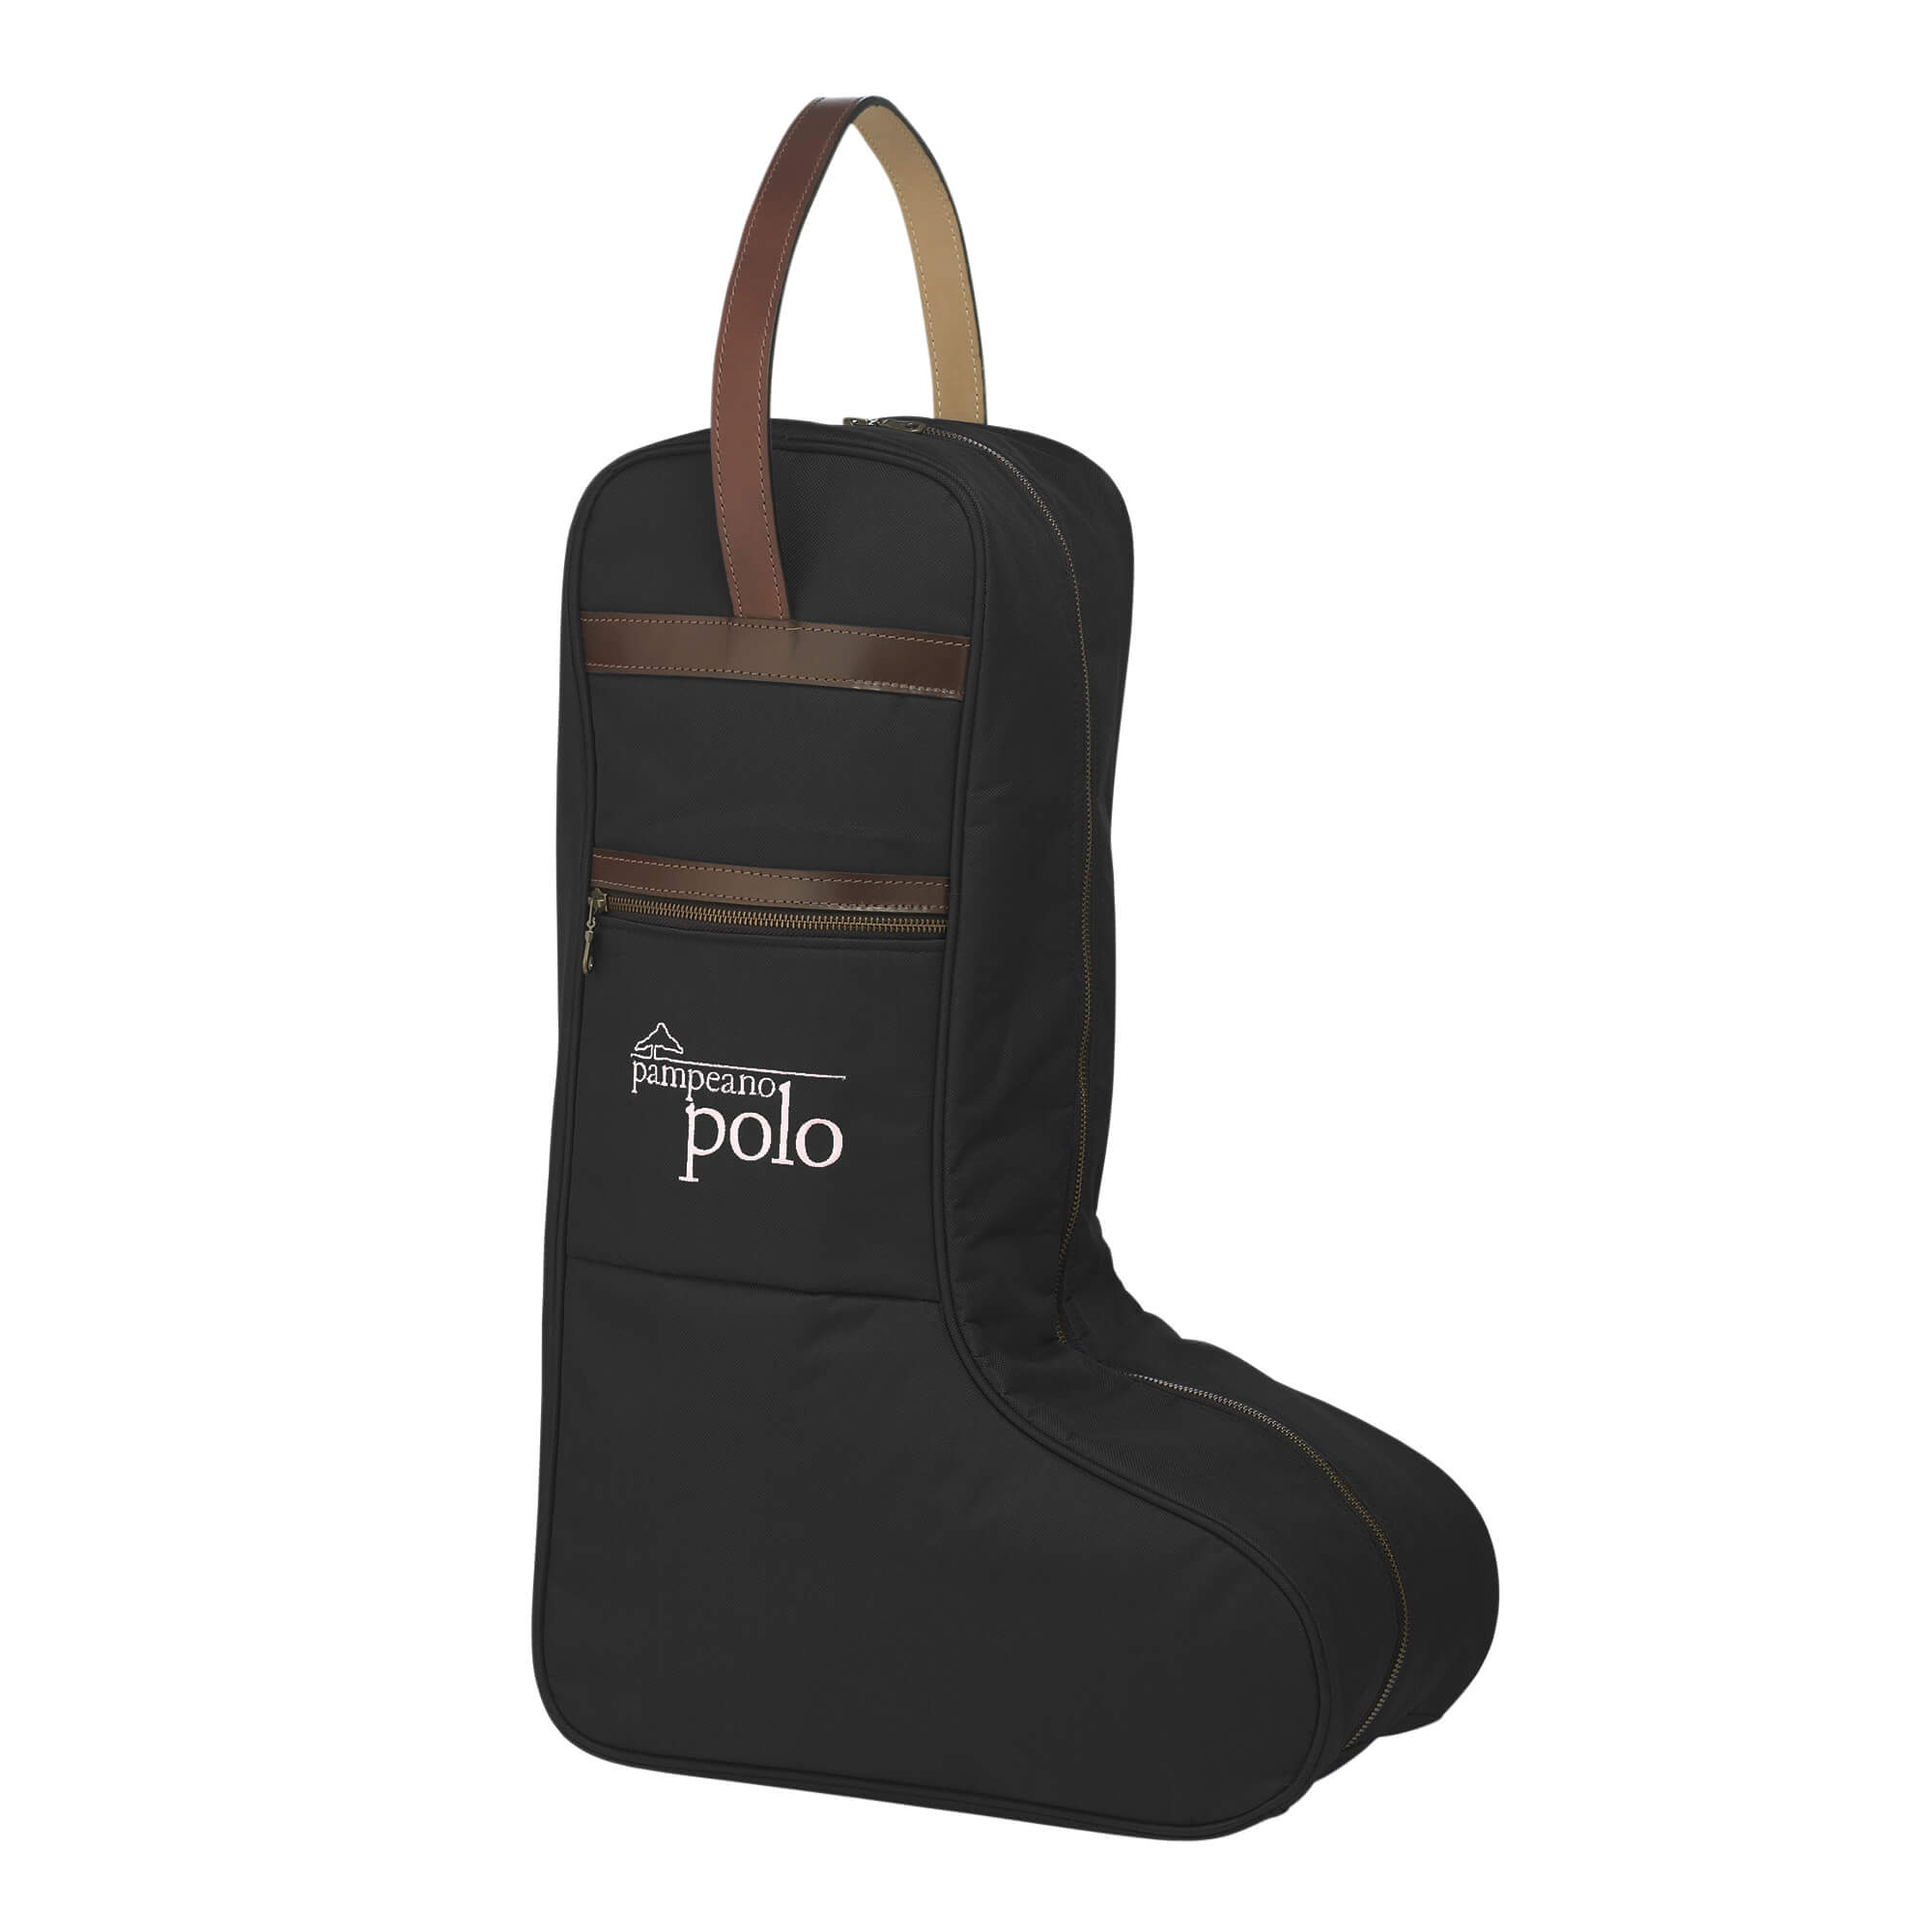 POLO BOOT BAG